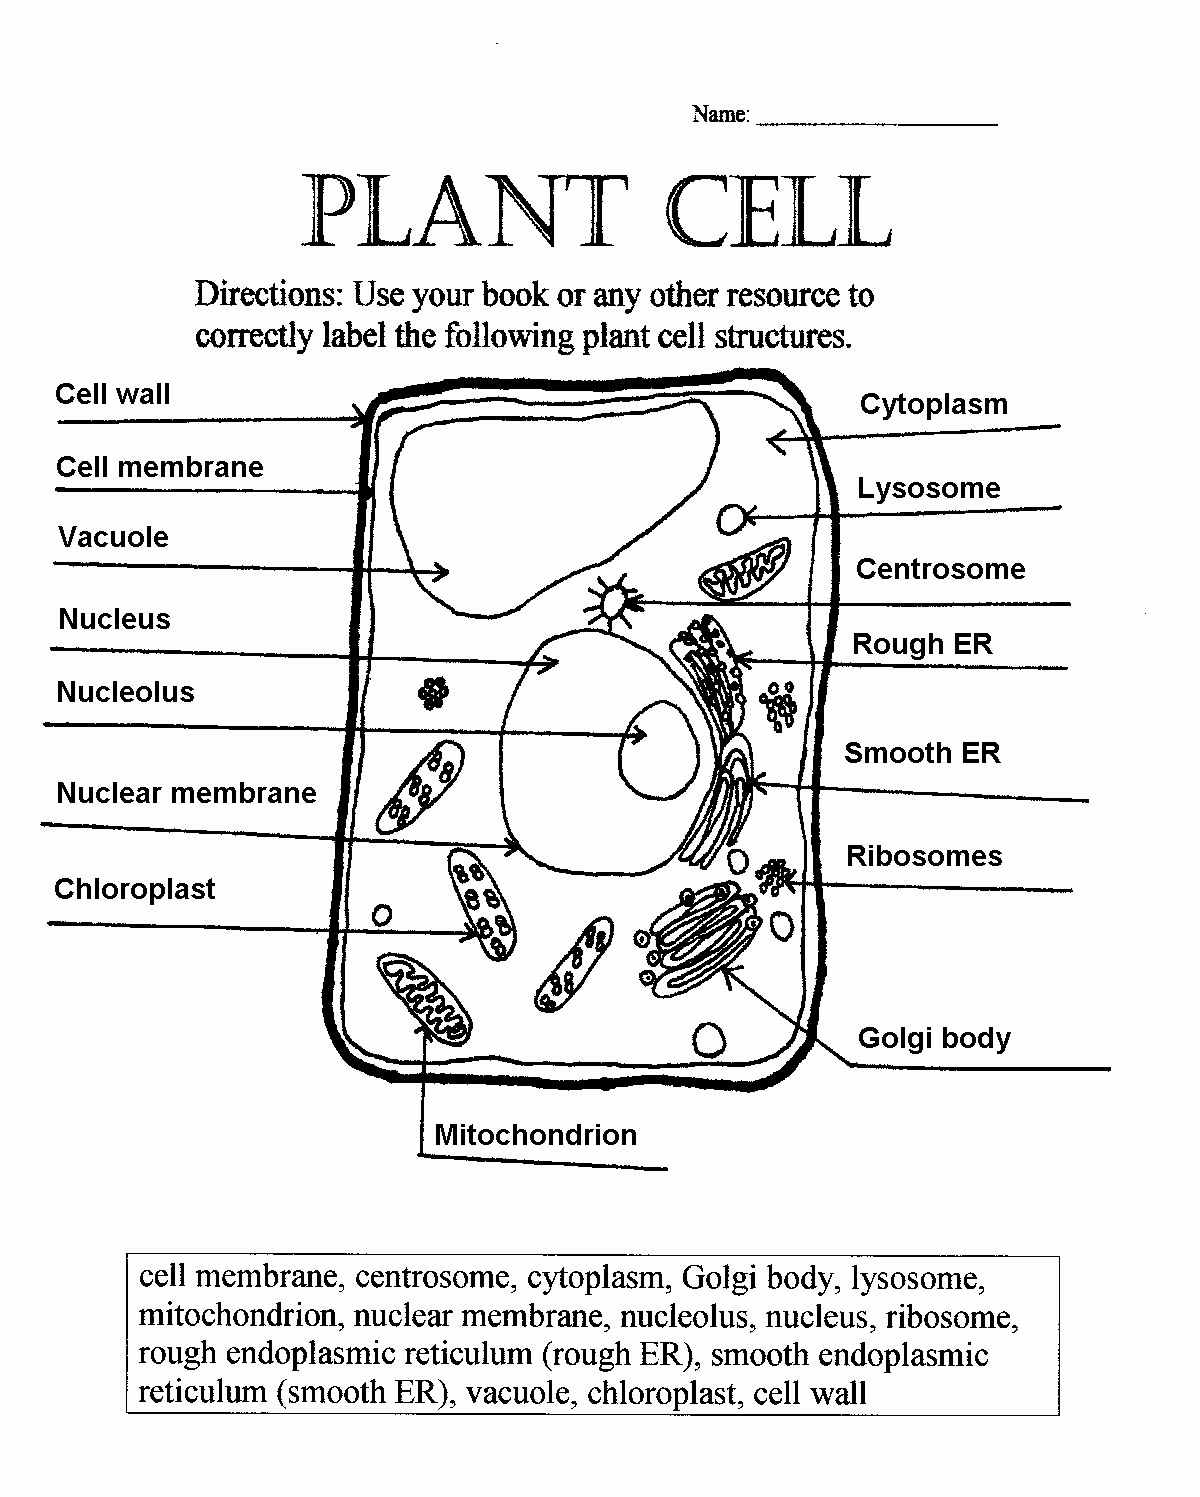 Animal Cell Worksheet Answers Inspirational Plant Cell Parts Worksheet with Word Bank